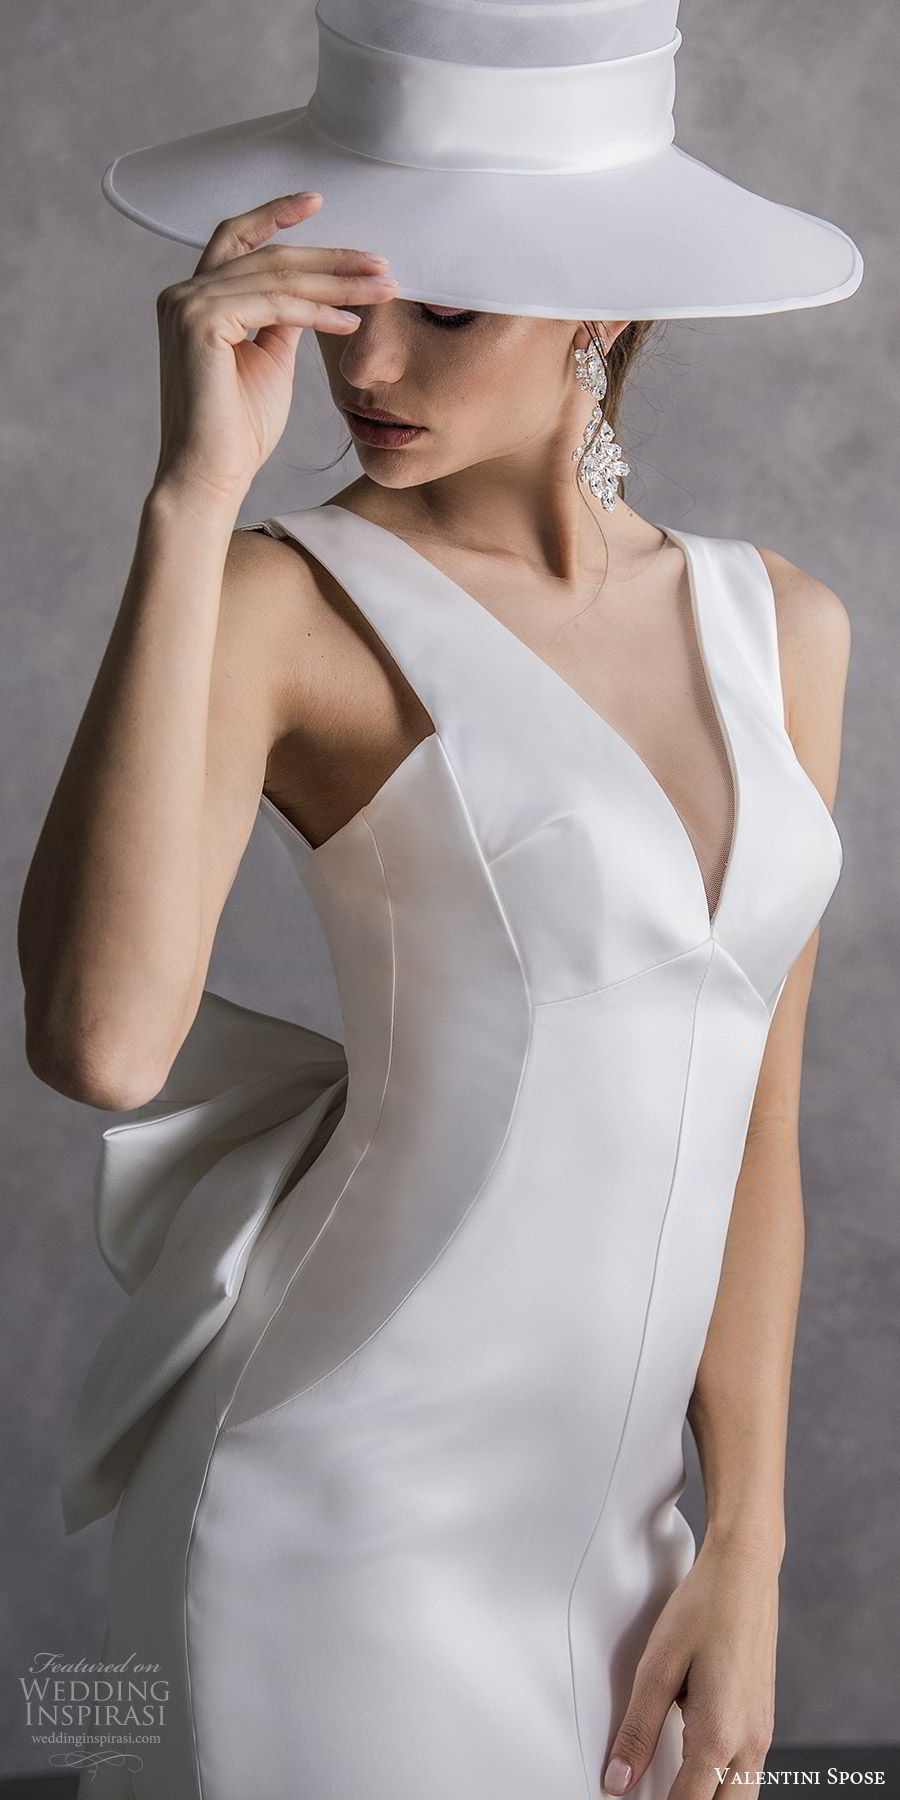 valentini spose spring 2020 bridal sleeveless thick straps v neckline sheath wedding dress (21) minimal clean chic hat mv